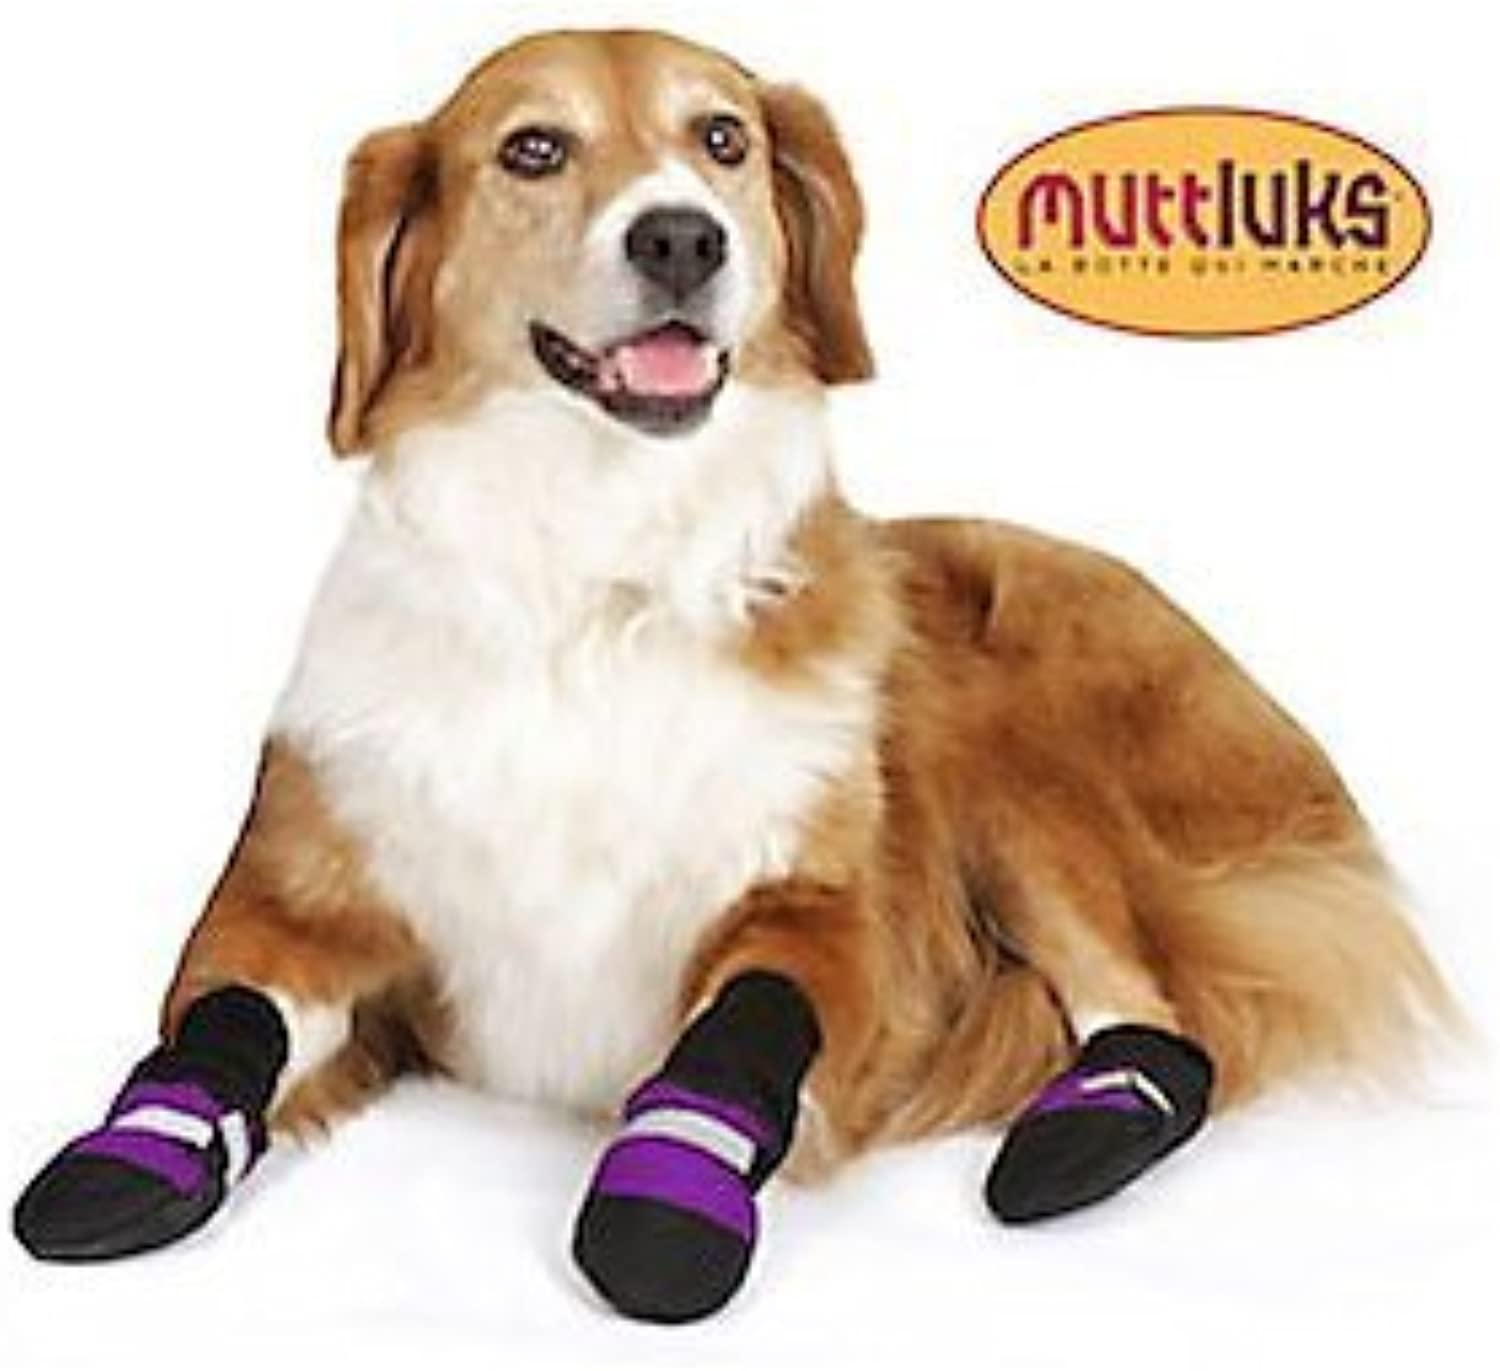 Muttluks Fleece Lined 4.25Inch to 4.75Inch Dog Boots, XLarge, Purple, Set of 4 by A.C. Kerman  Pet Products